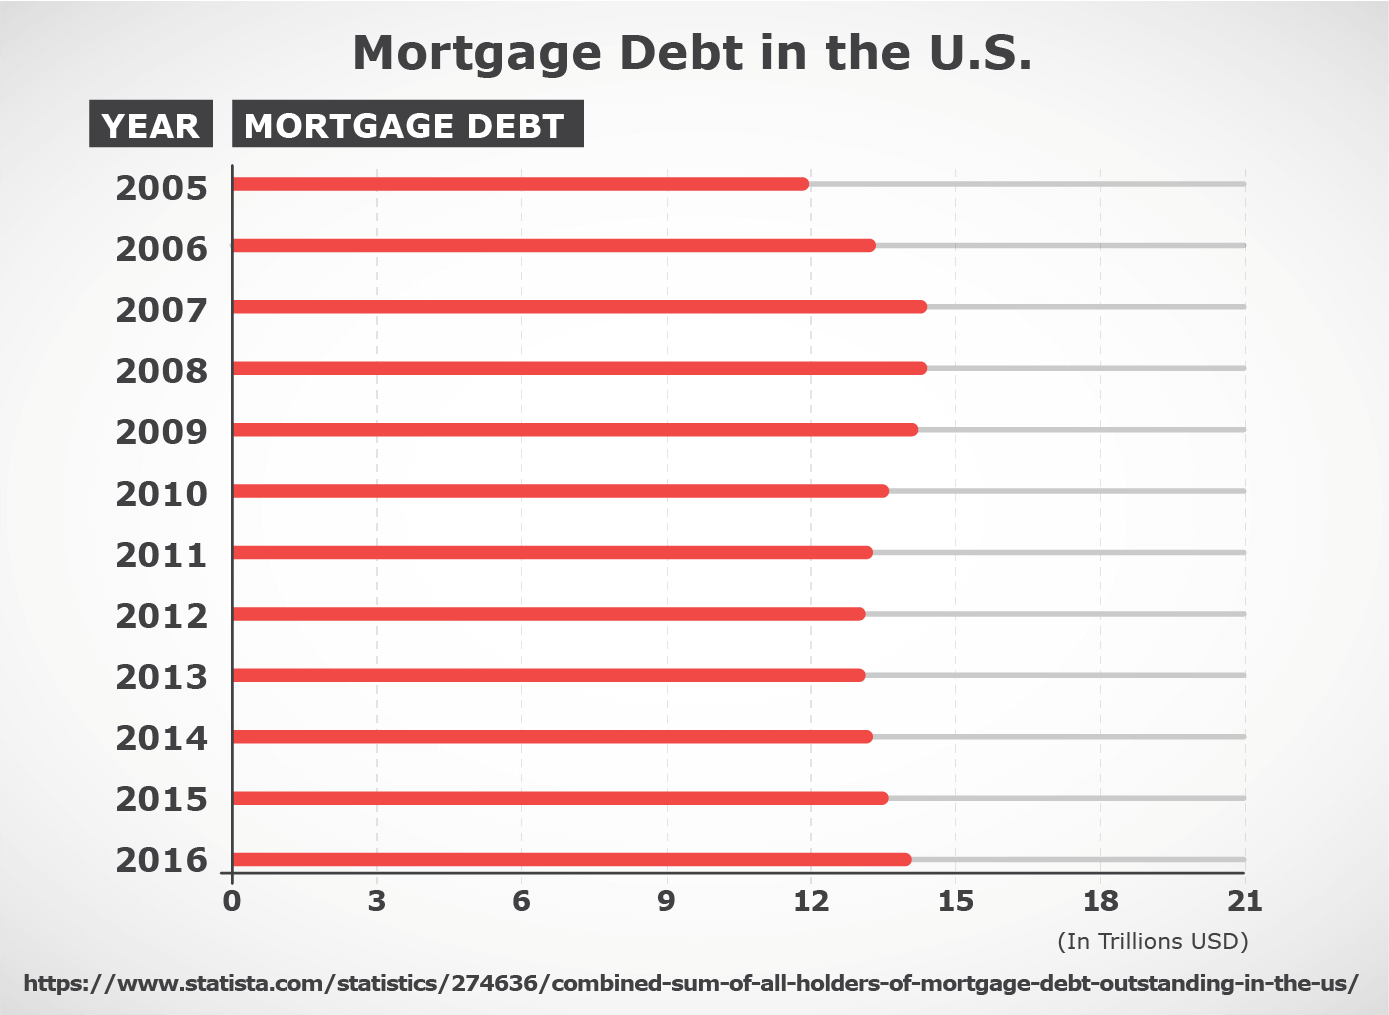 Mortgage debt in the U.S.